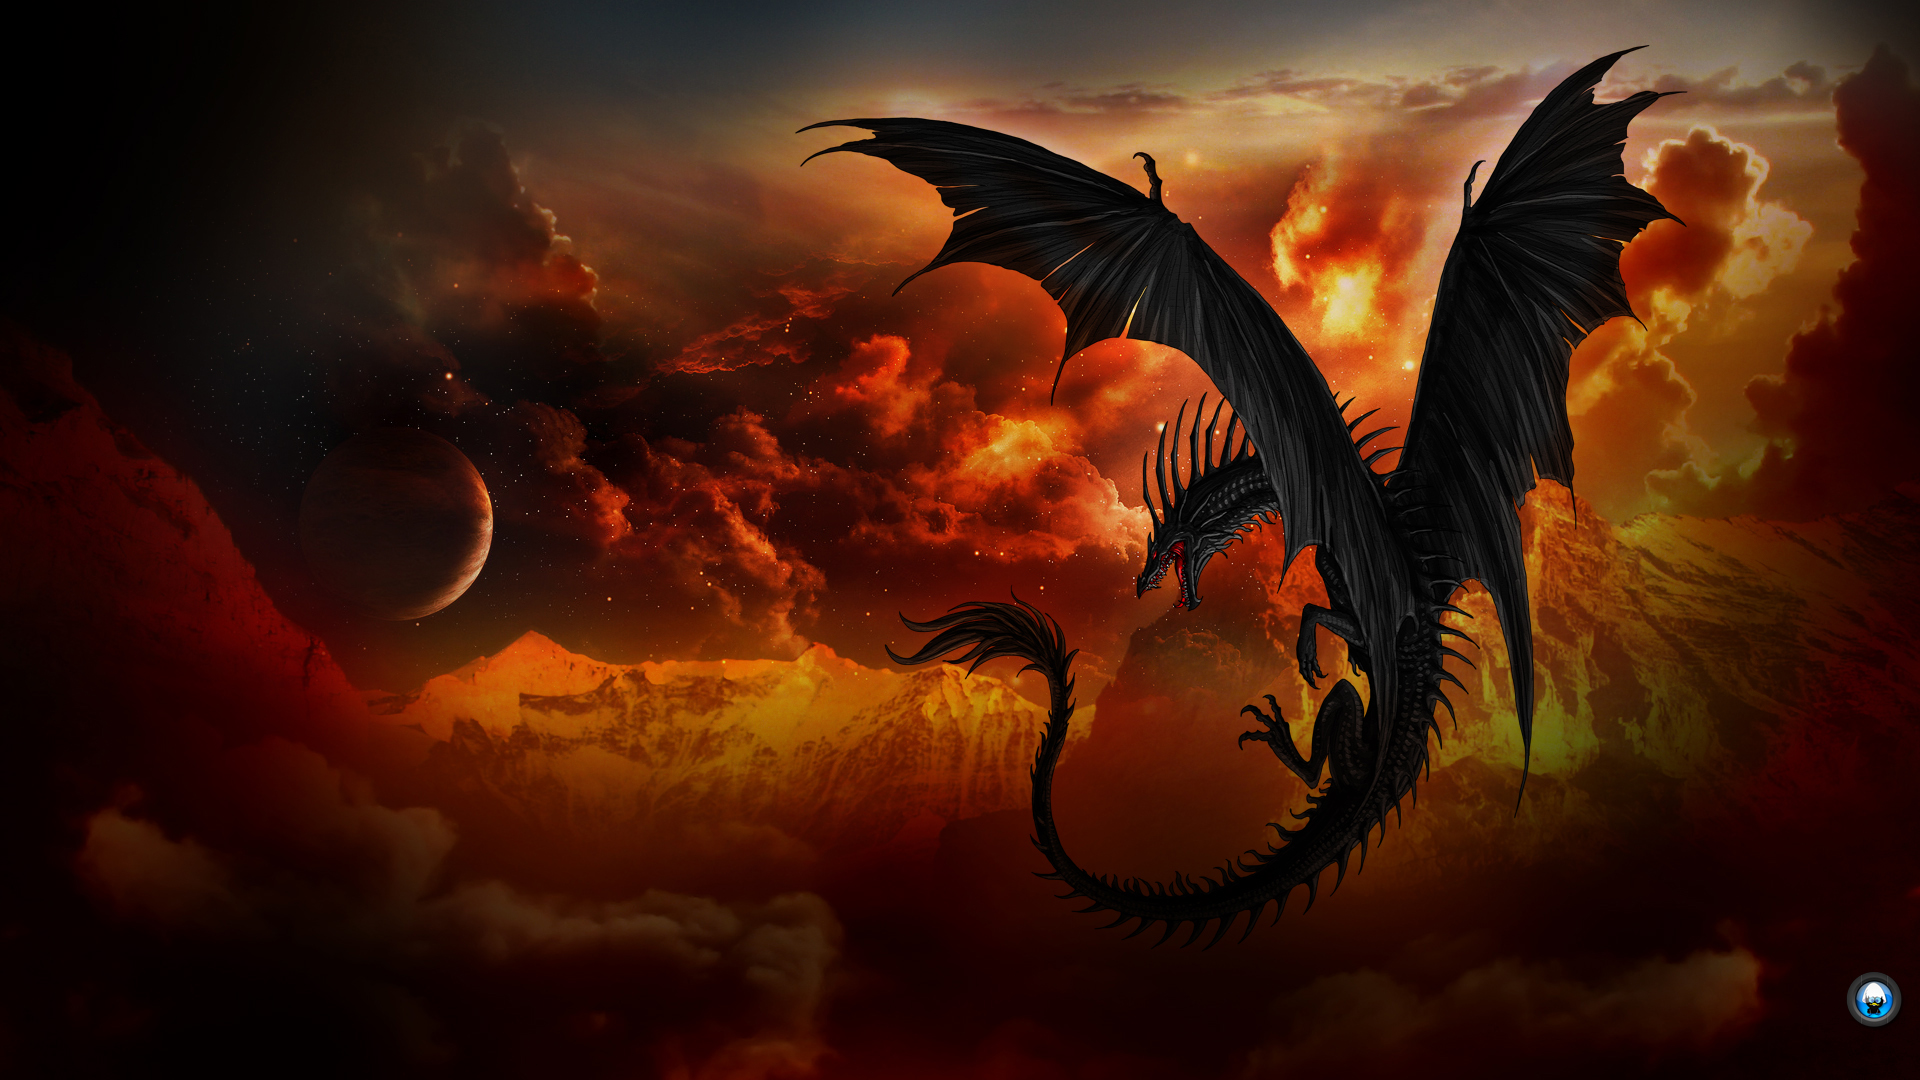 Dragons Wallpaper